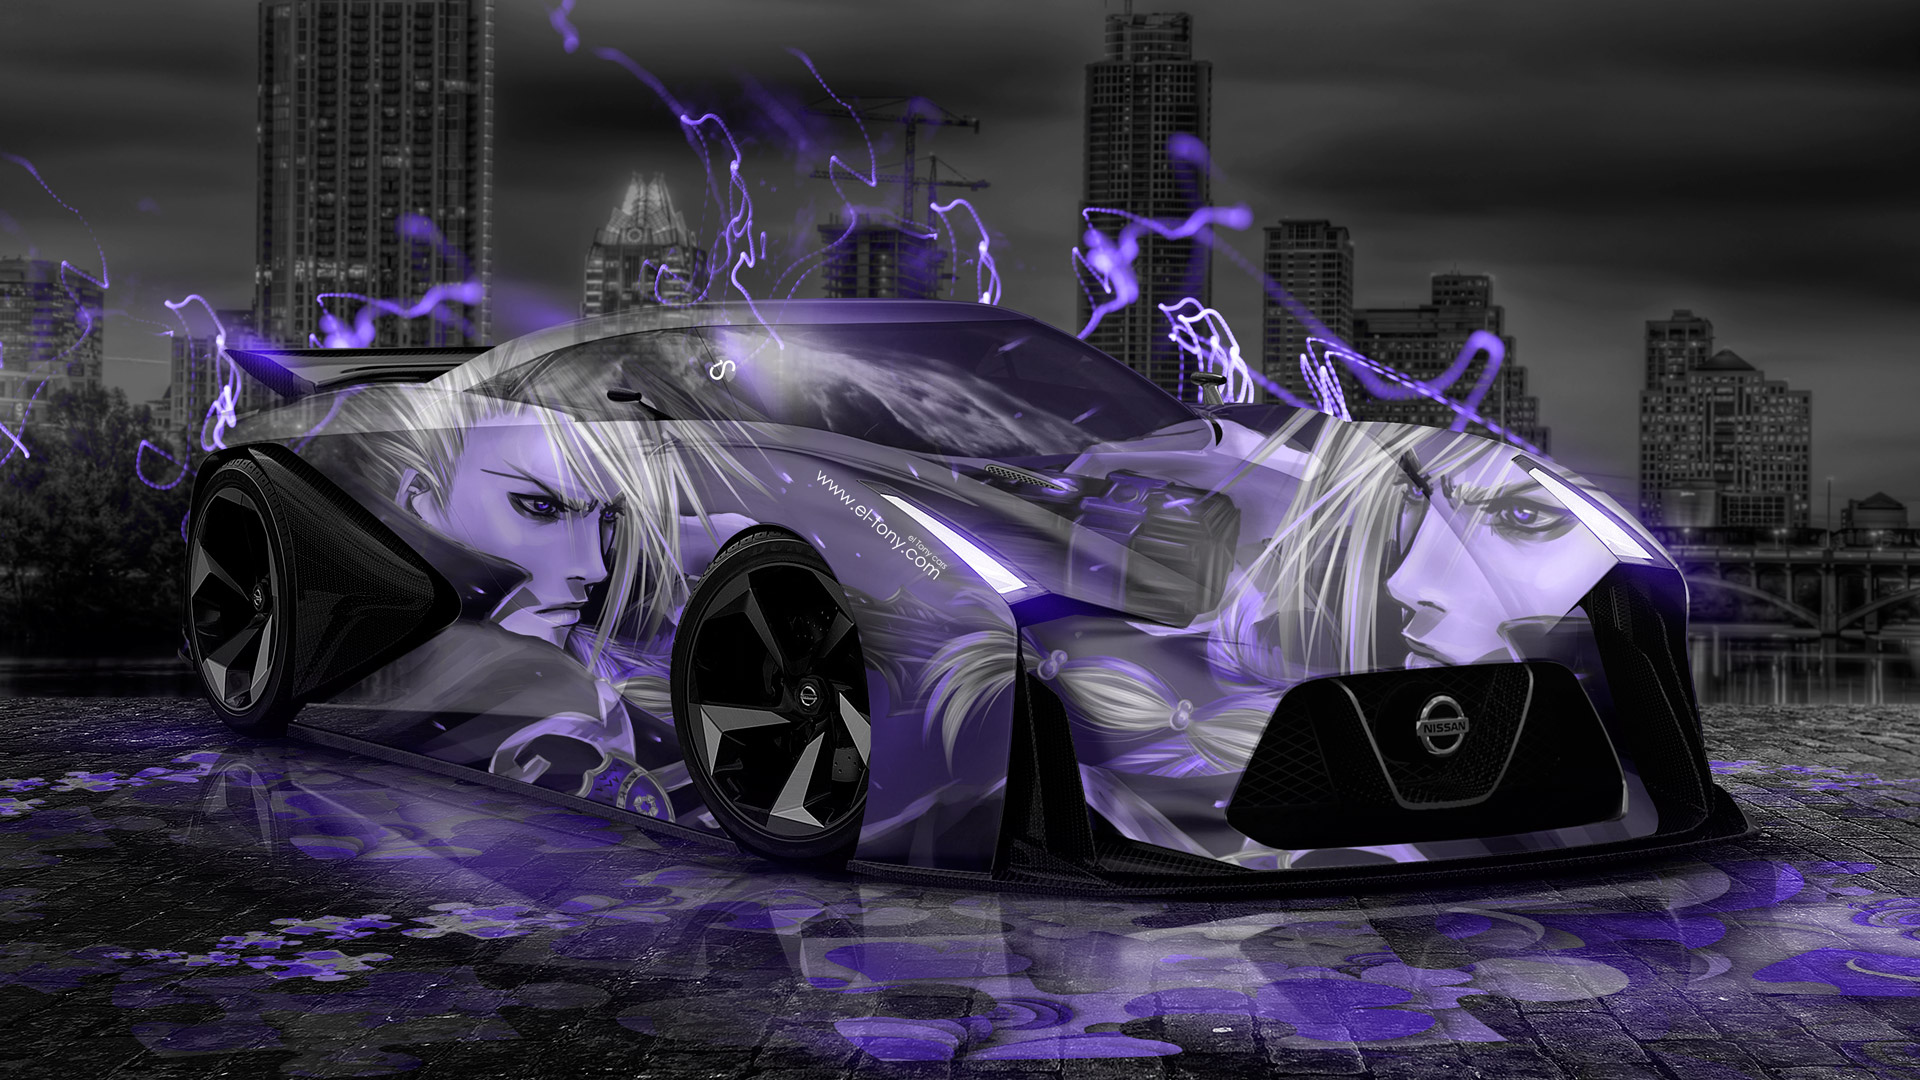 Nissan Gtr 2020 Concept Anime Aerography City Car 2014